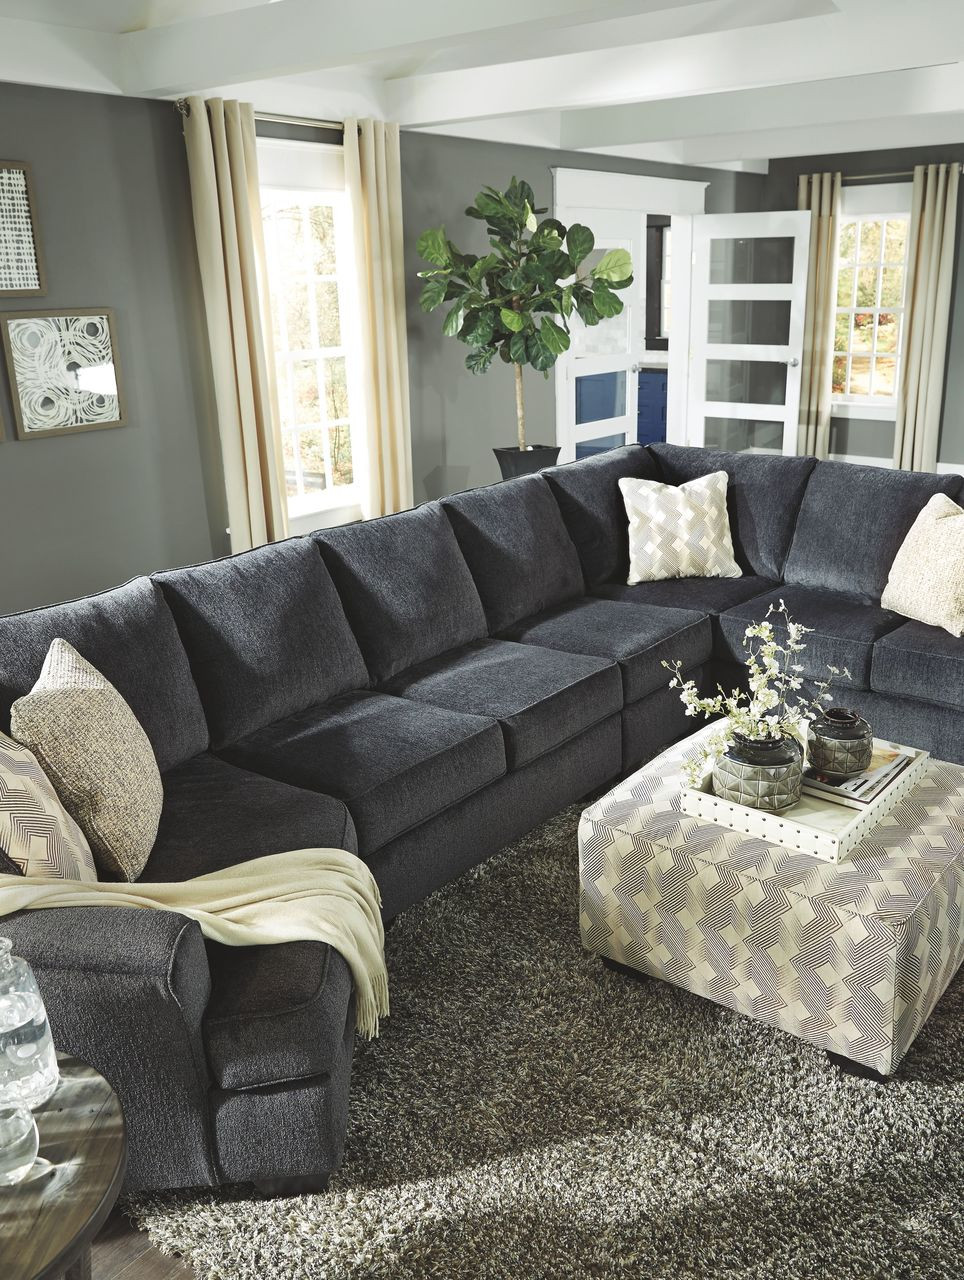 Pleasant Ashley Eltmann Slate Laf Cuddler Armless Loveseat Armless Chair Raf Sofa Couch With Corner Wedge Sectional Accent Ottoman Pdpeps Interior Chair Design Pdpepsorg